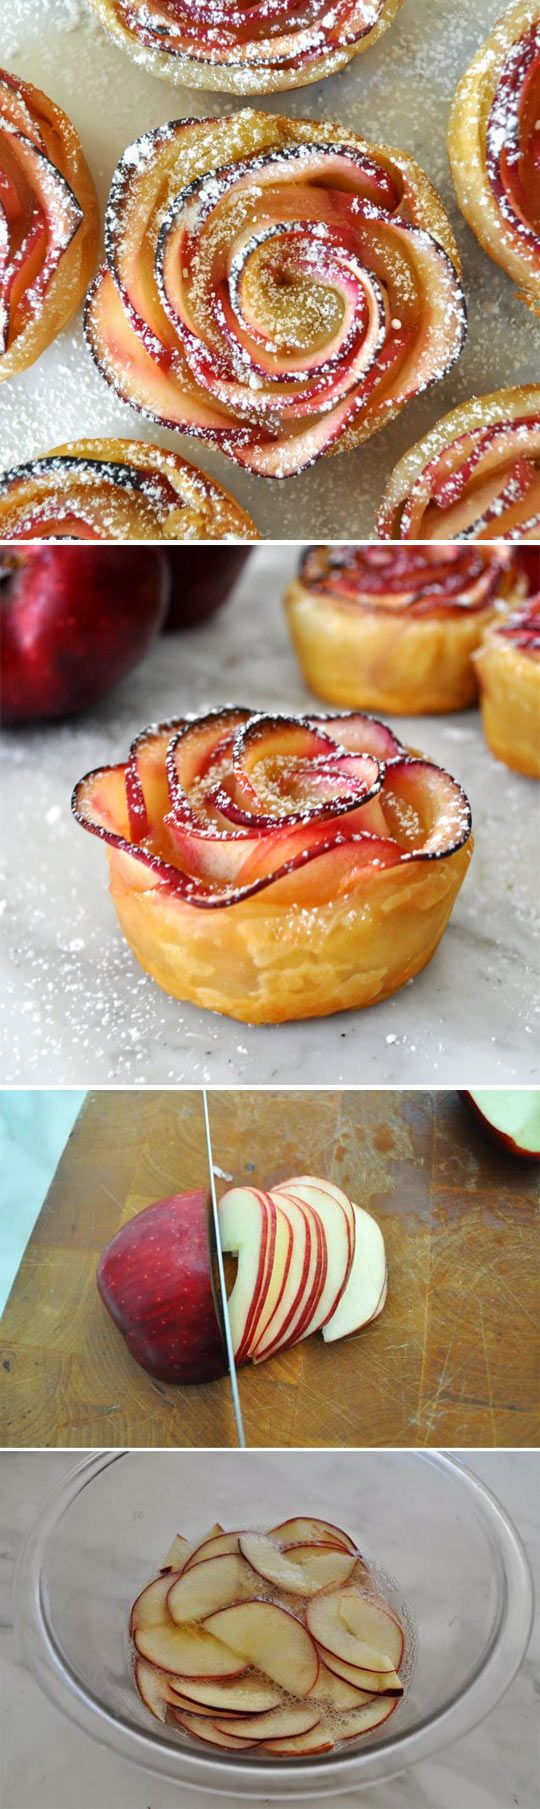 Apple tart roses